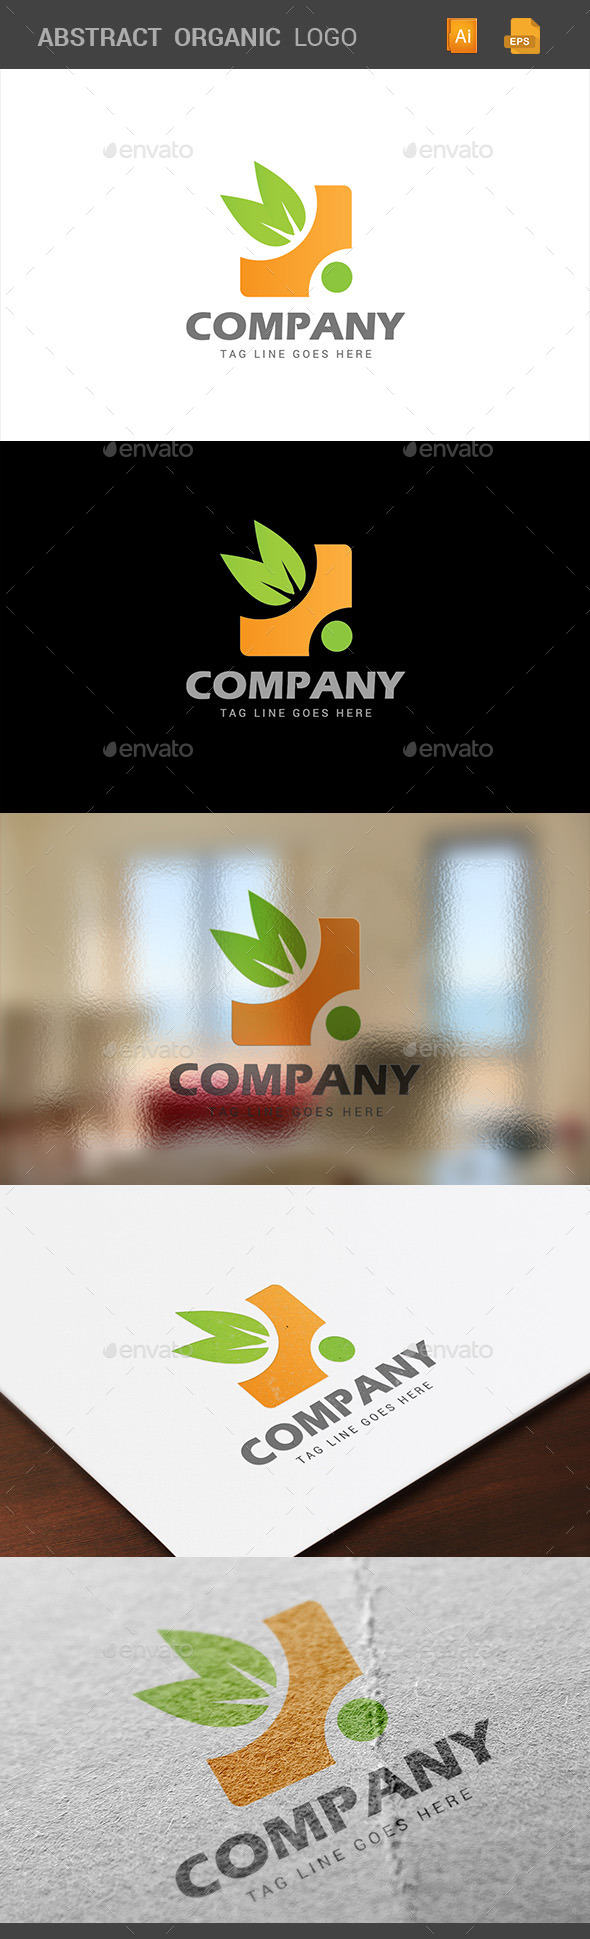 GraphicRiver Organic Abstract Logo 10629505